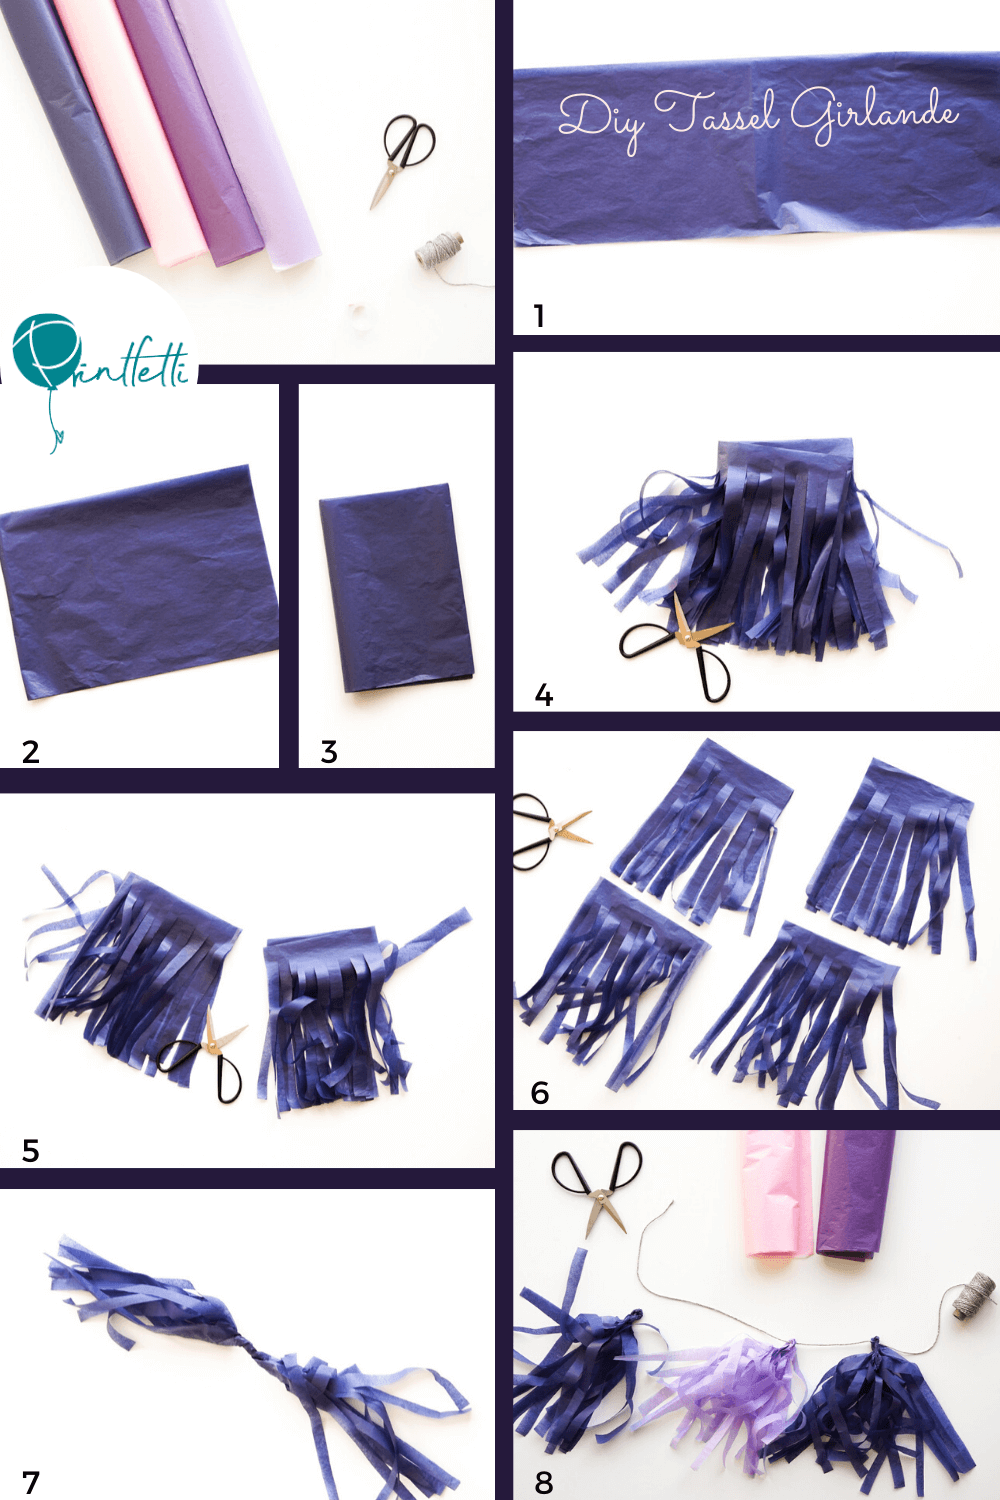 diy tasselgirlande step by step